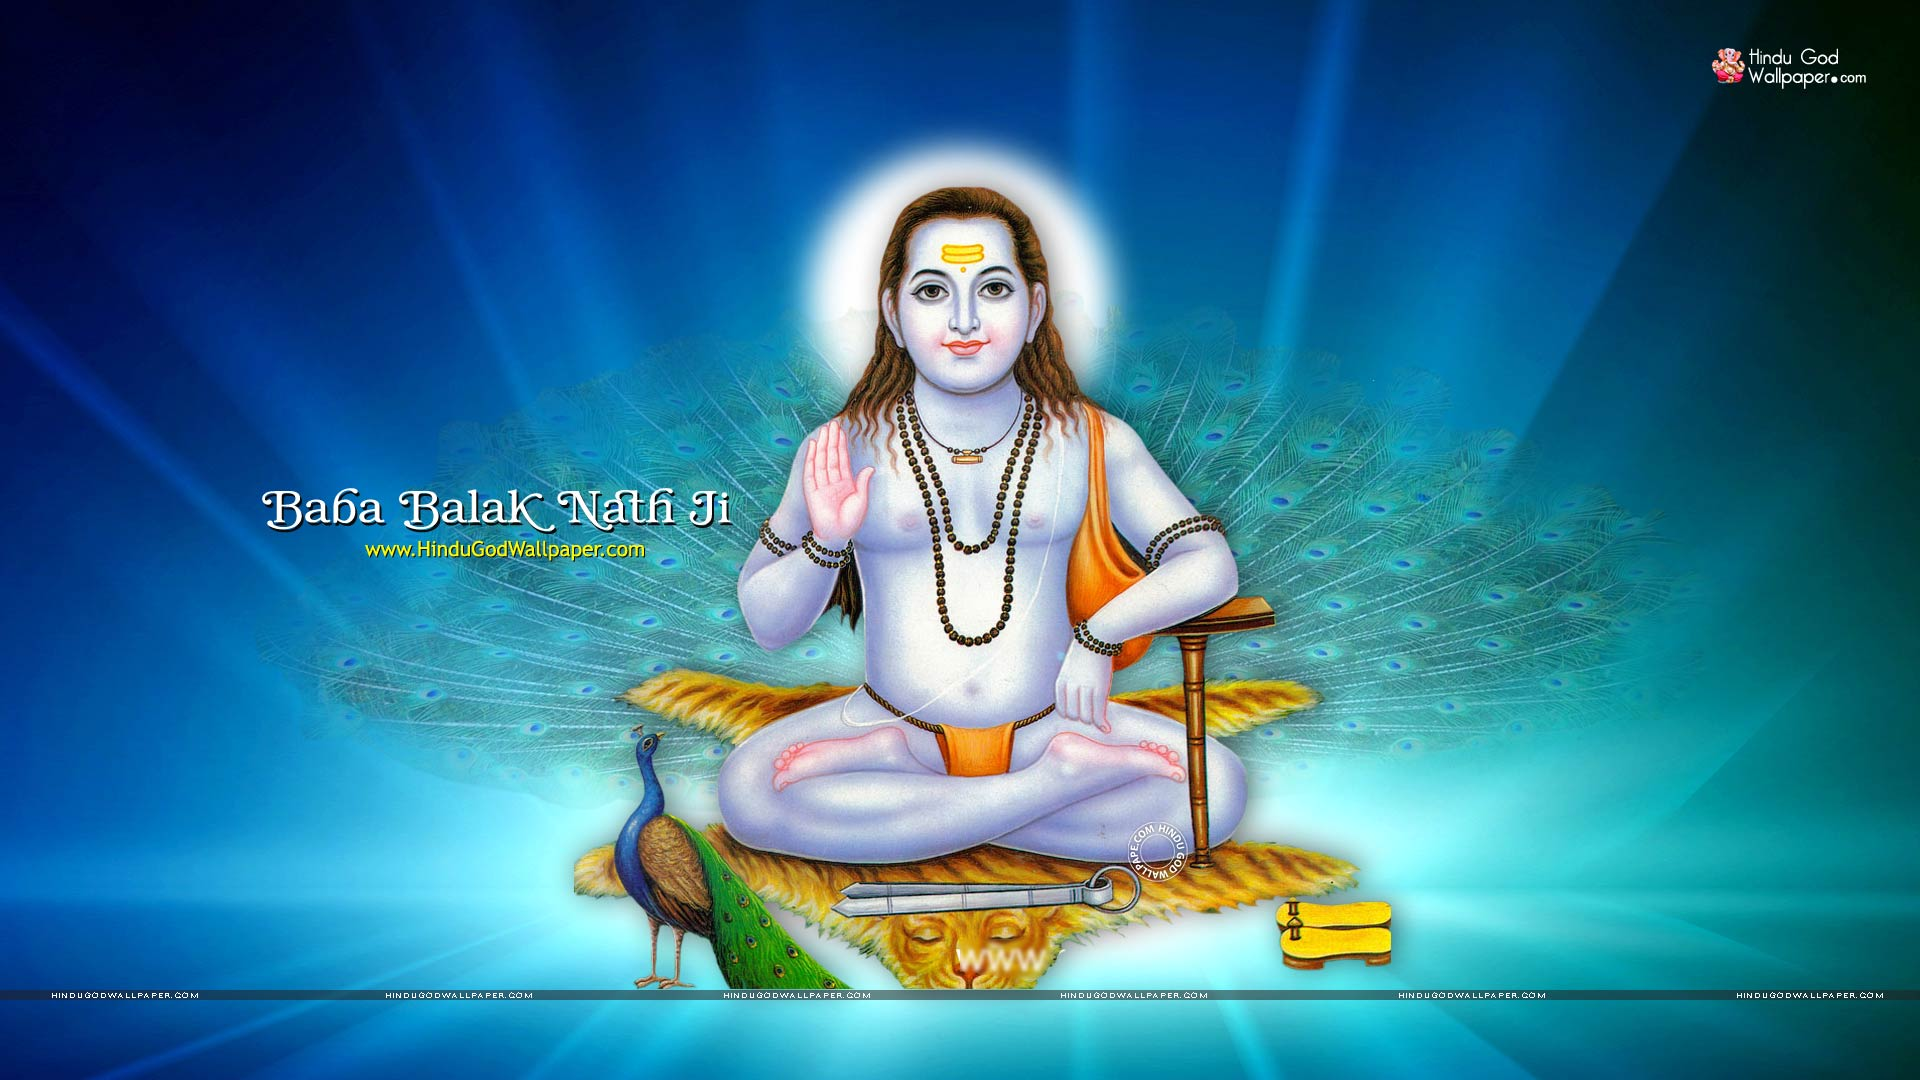 baba balak nath hd wallpaper